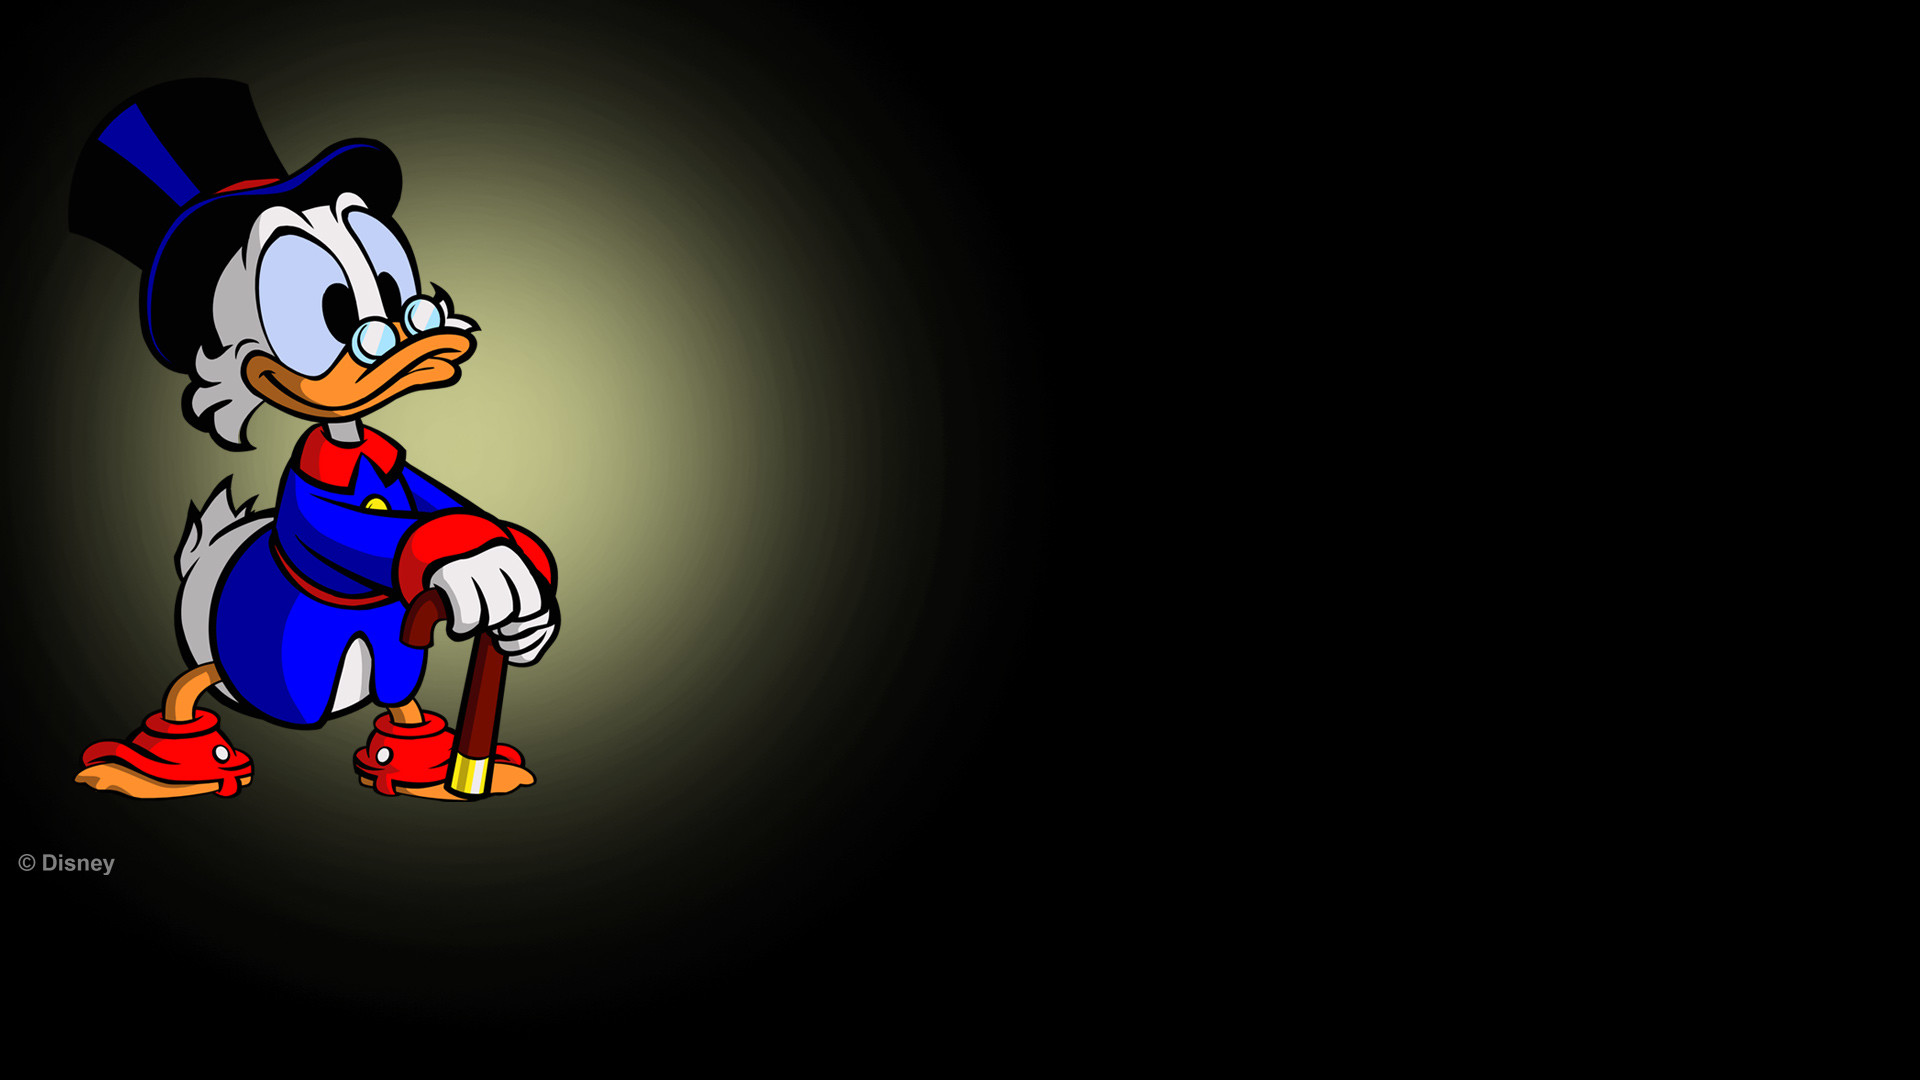 Res: 1920x1080, View Full Size